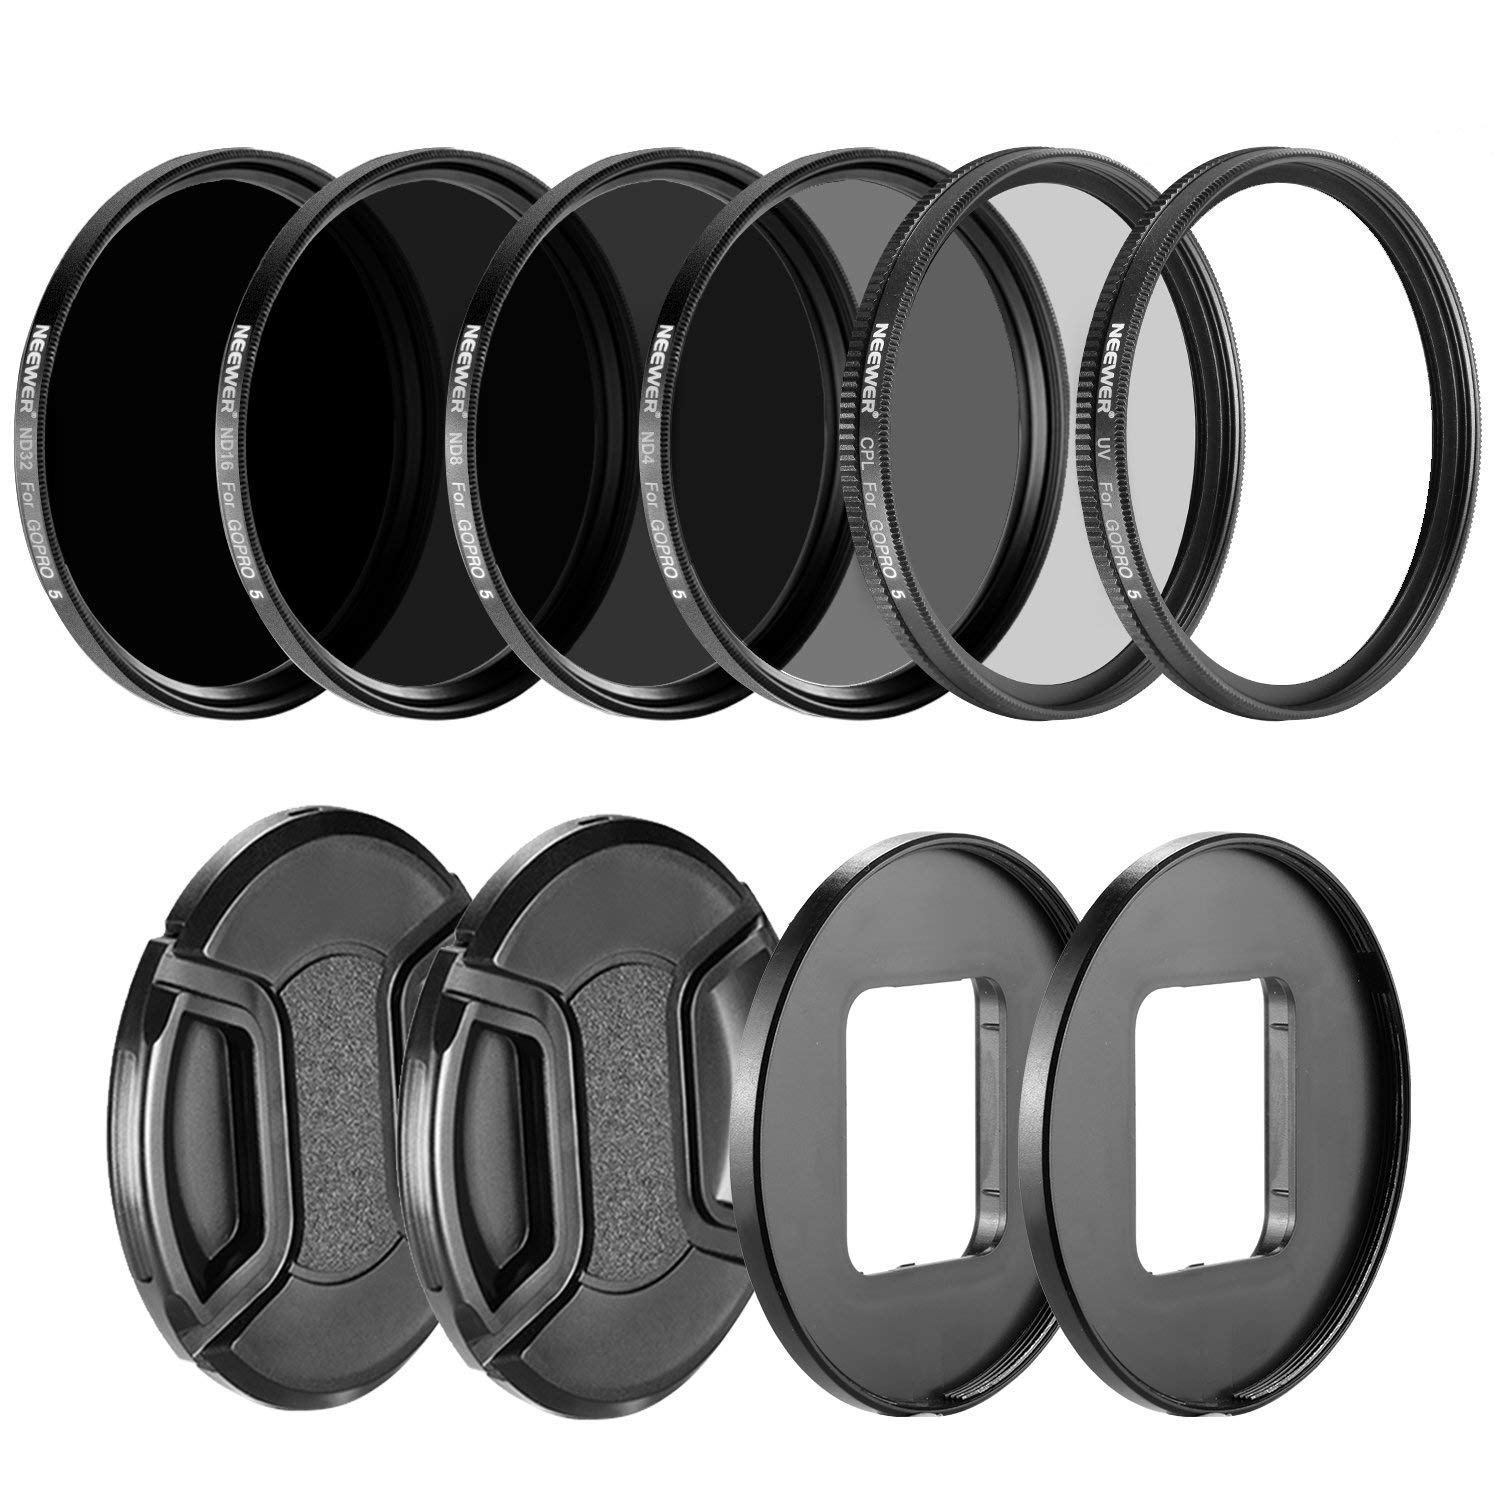 Neewer Camera Lens Filter Kit for GoPro Hero 5/6/7: (4)Neutral Density ND Filter(ND4/ND8/ND16/ND32), (1)UV Filter, (1)CPL Filter, (2)Lens Cap, (2)Lens Adapter Ring by Neewer